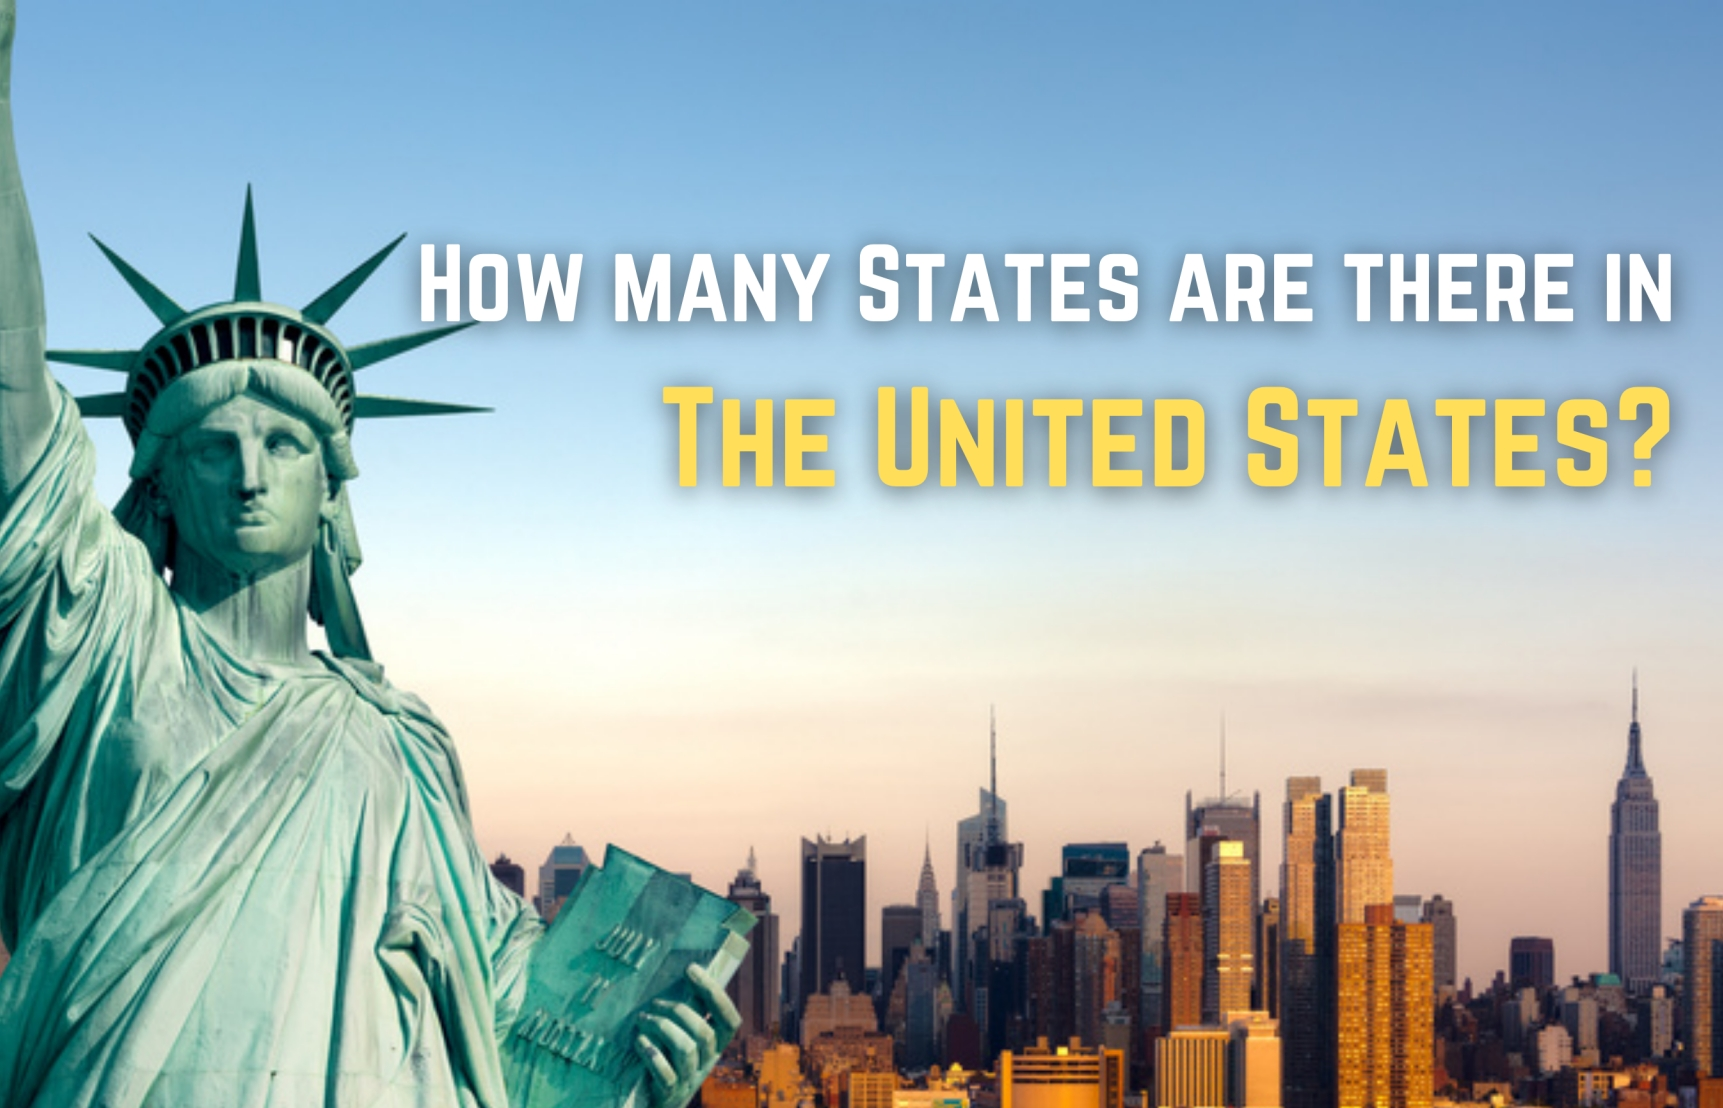 How Many States Are There In The United States - 50 or 52?